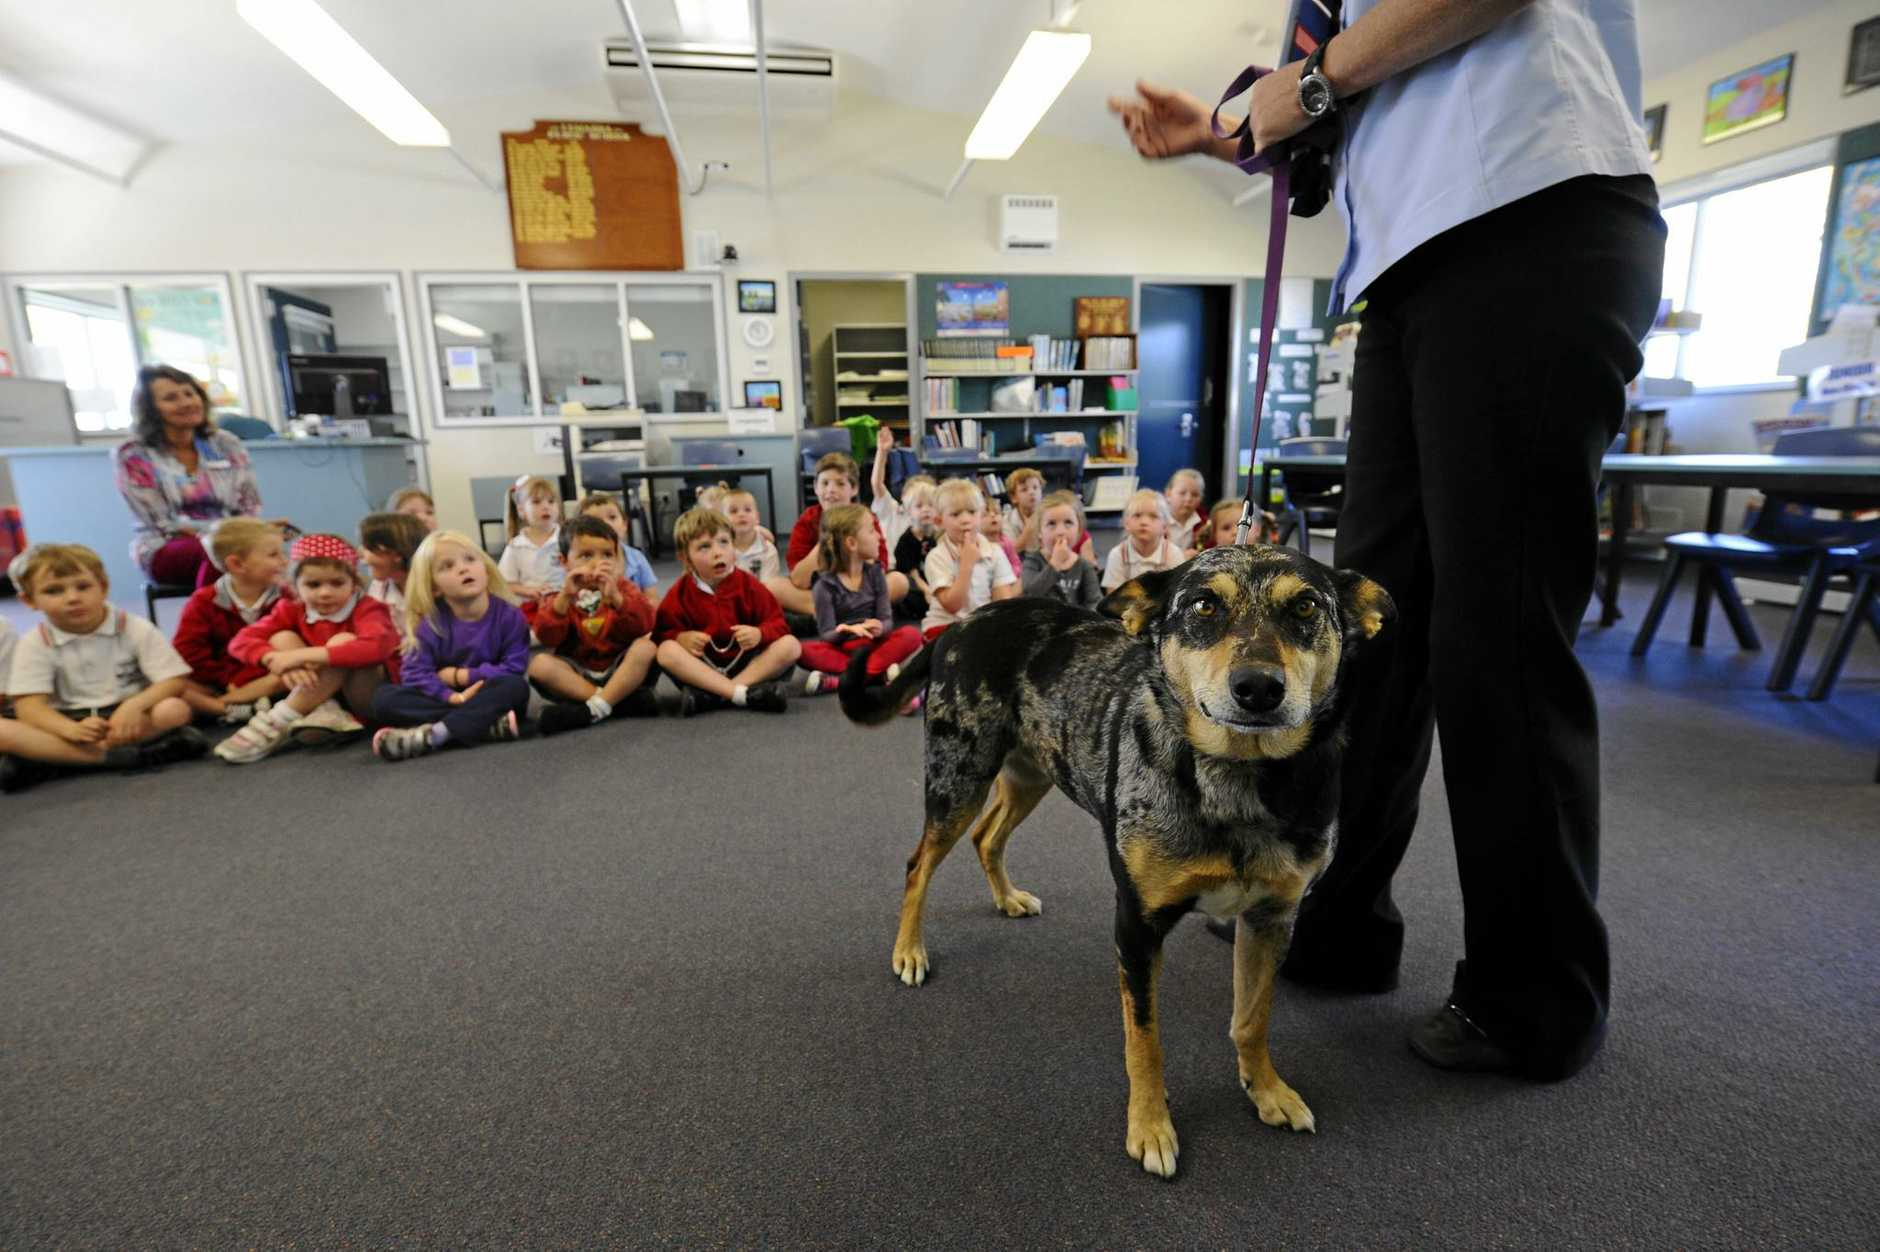 A reader is calling for the introduction of animal care into school curriculum.